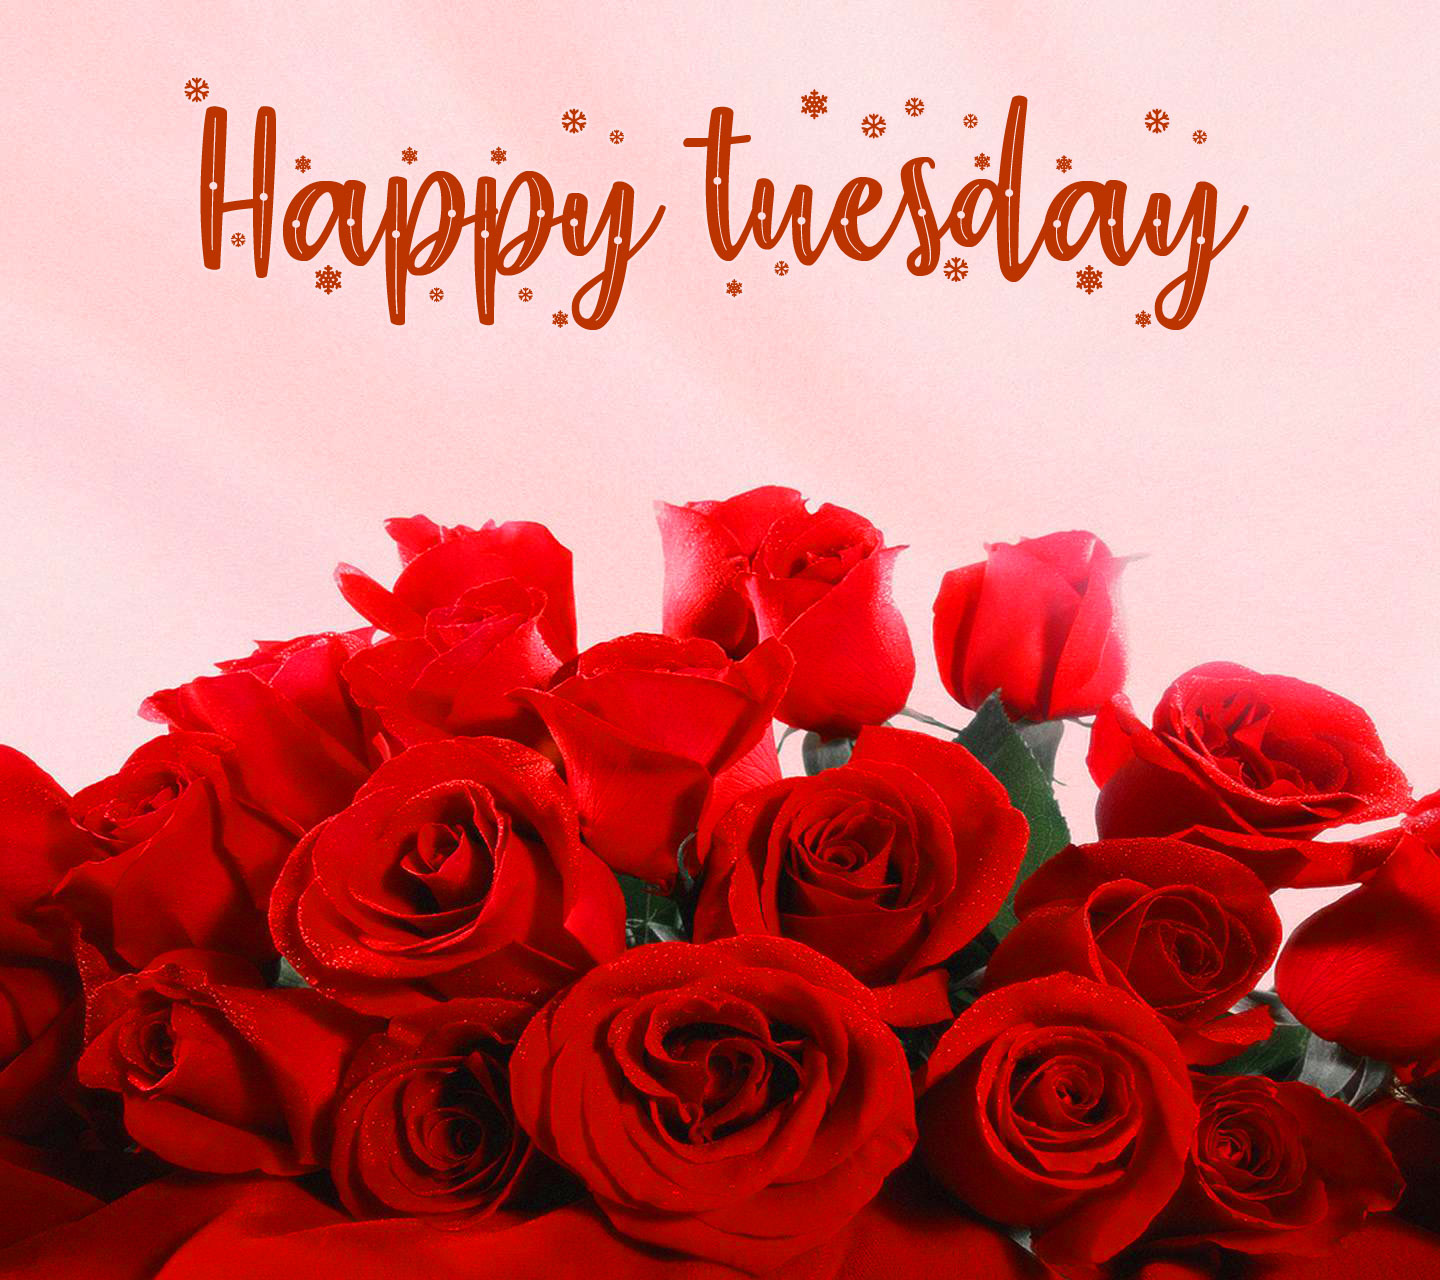 New Free Good Morning Tuesday photo Download